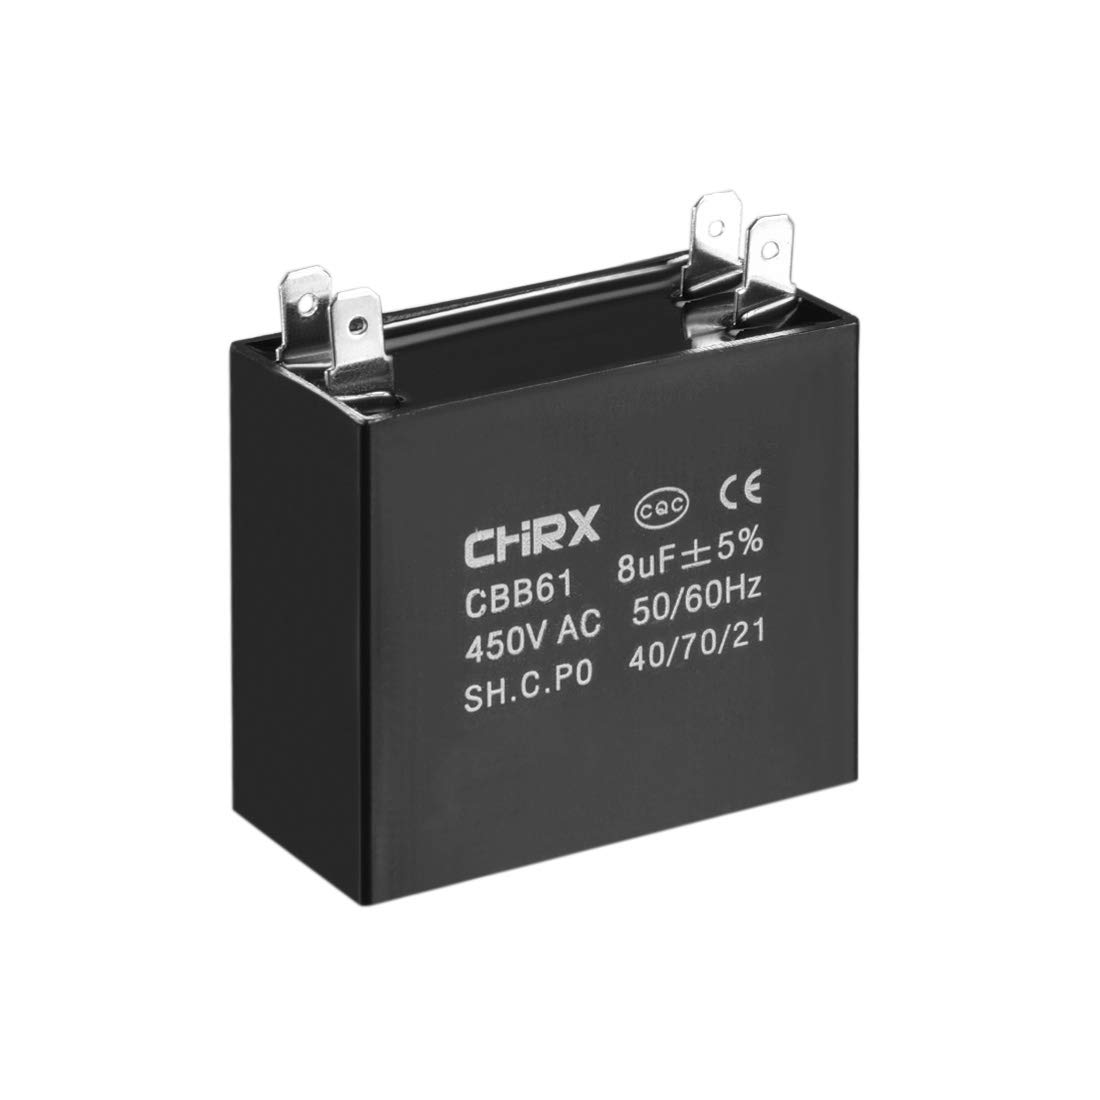 sourcing map CBB61 Run Capacitor 450V AC 8uF Doule Insert Metallized Polypropylene Film Capacitors for Ceiling Fan